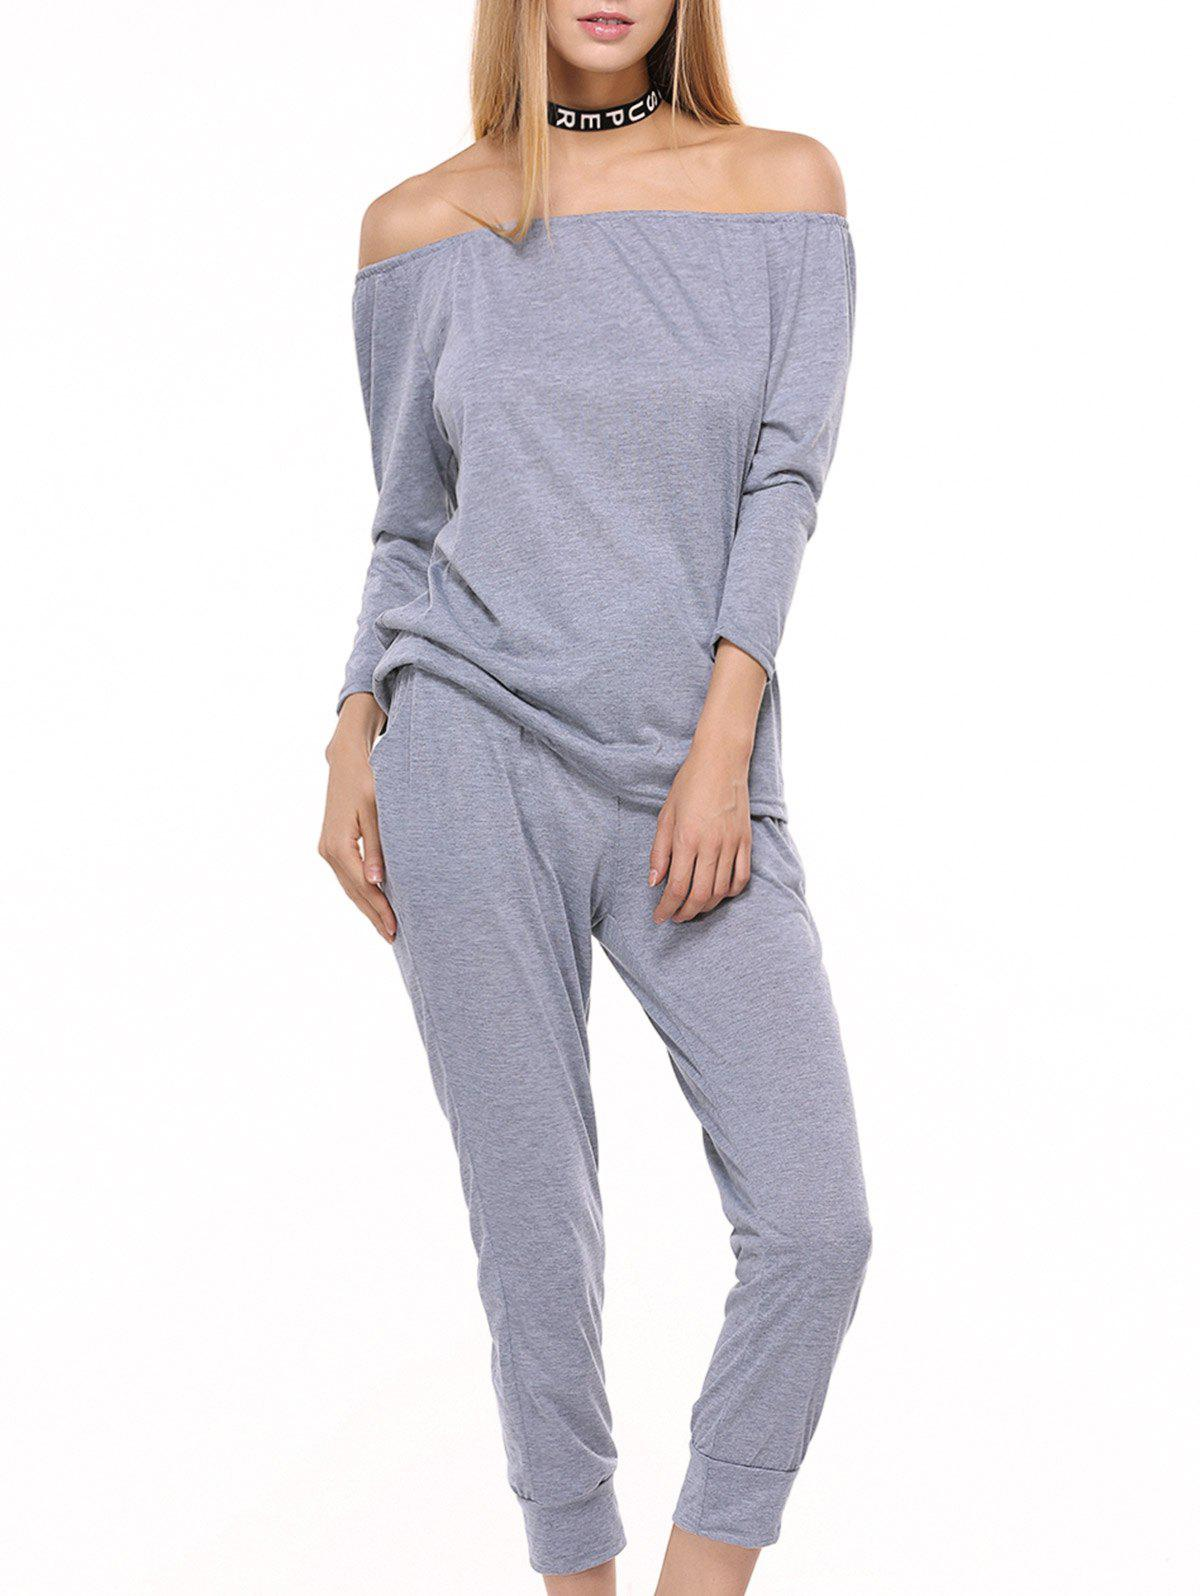 Sporty Off The Shoulder Top et Drawstring Jogger Pants - gris L